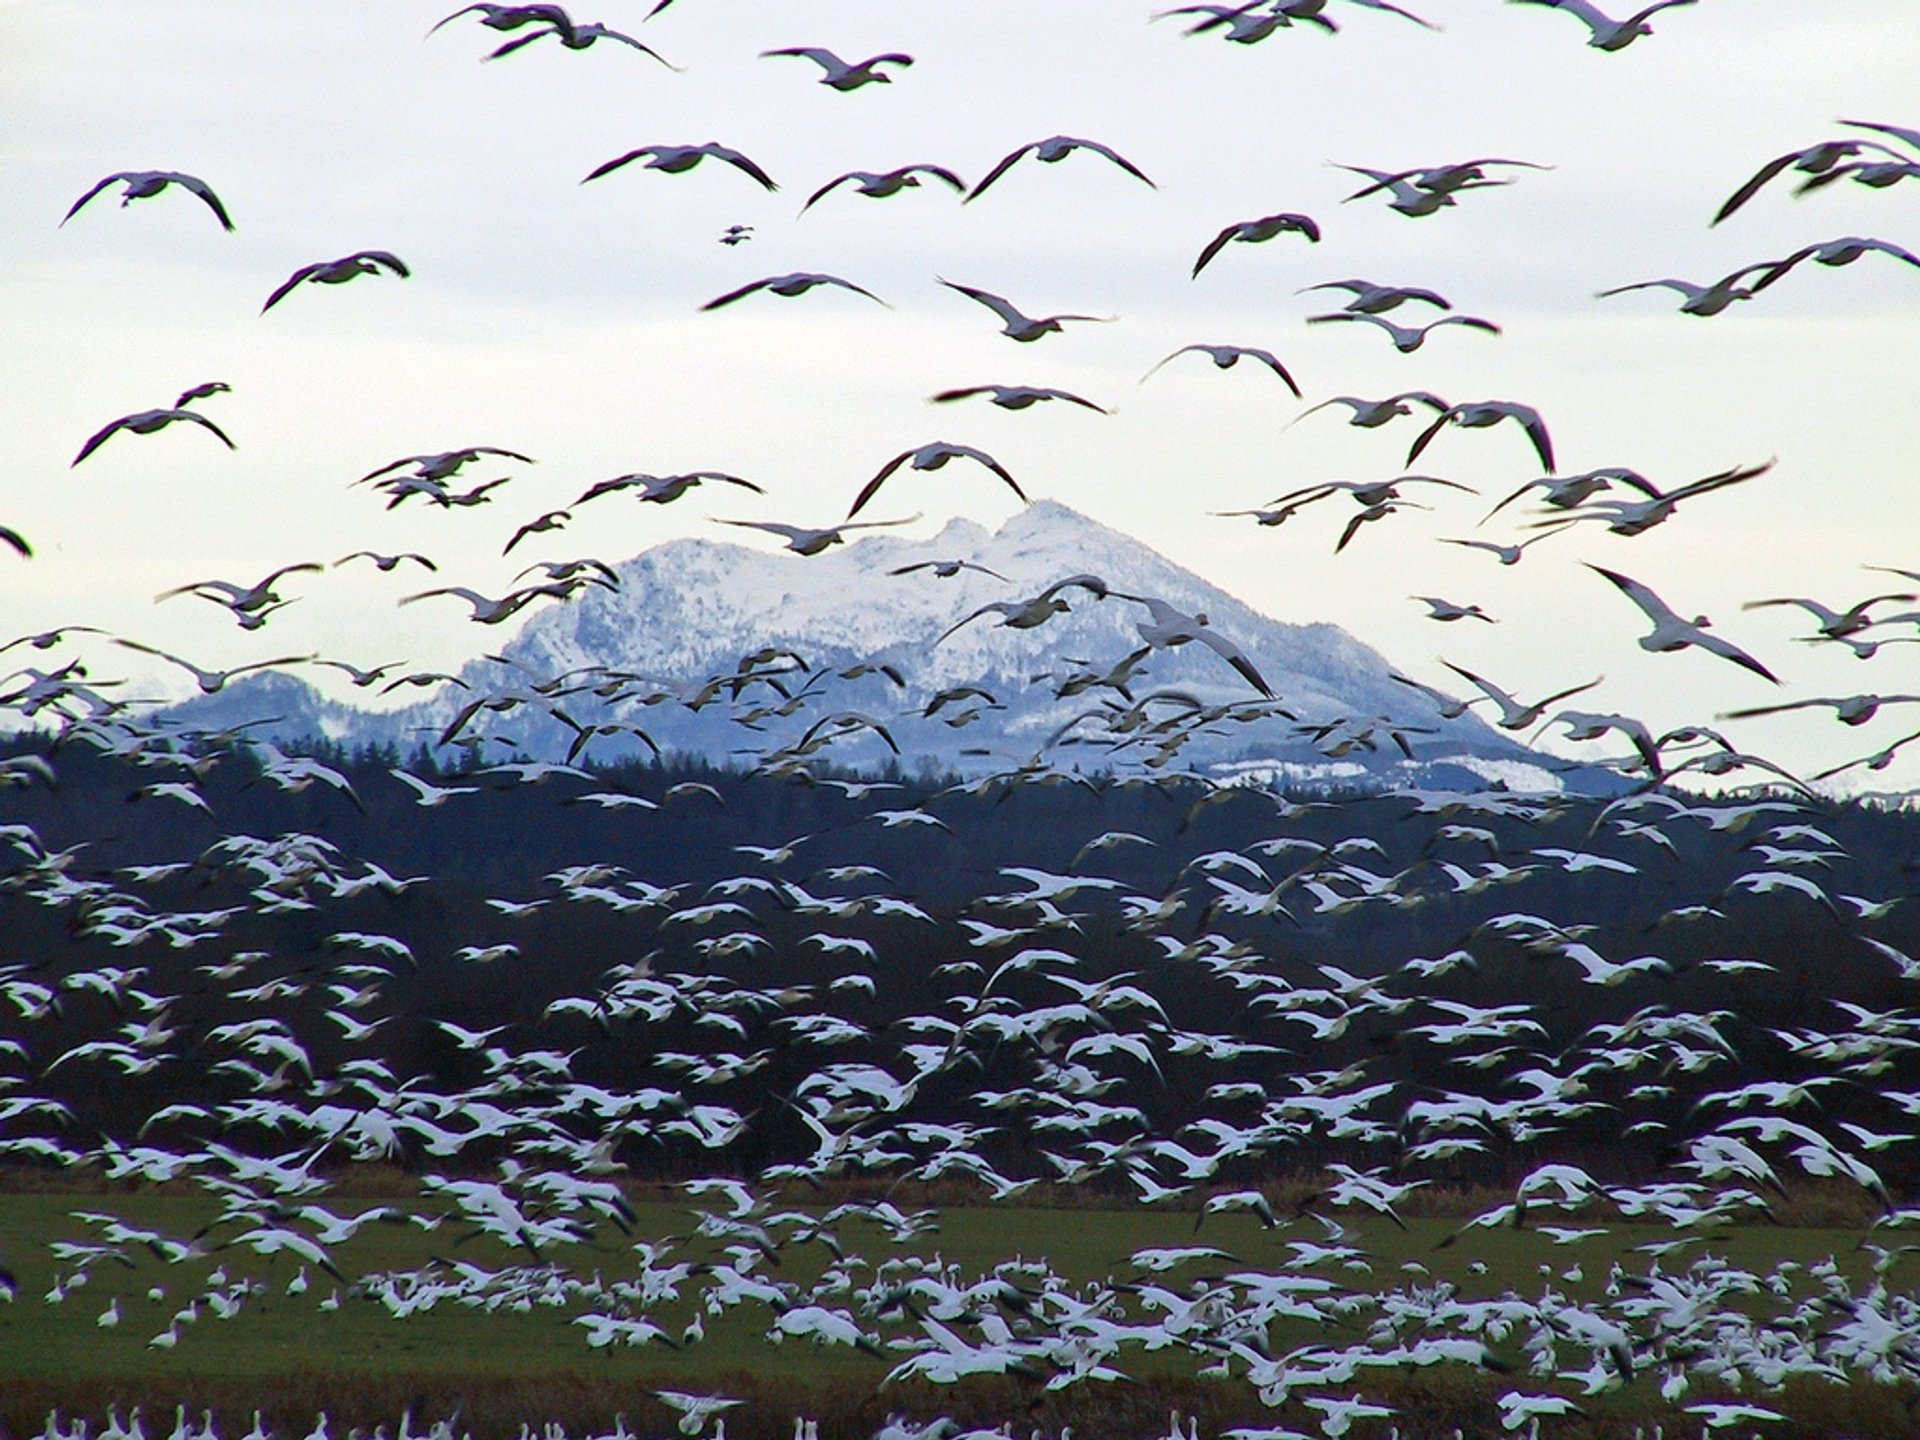 Snow Geese Spring Migration in Alaska 2019 - Best Time